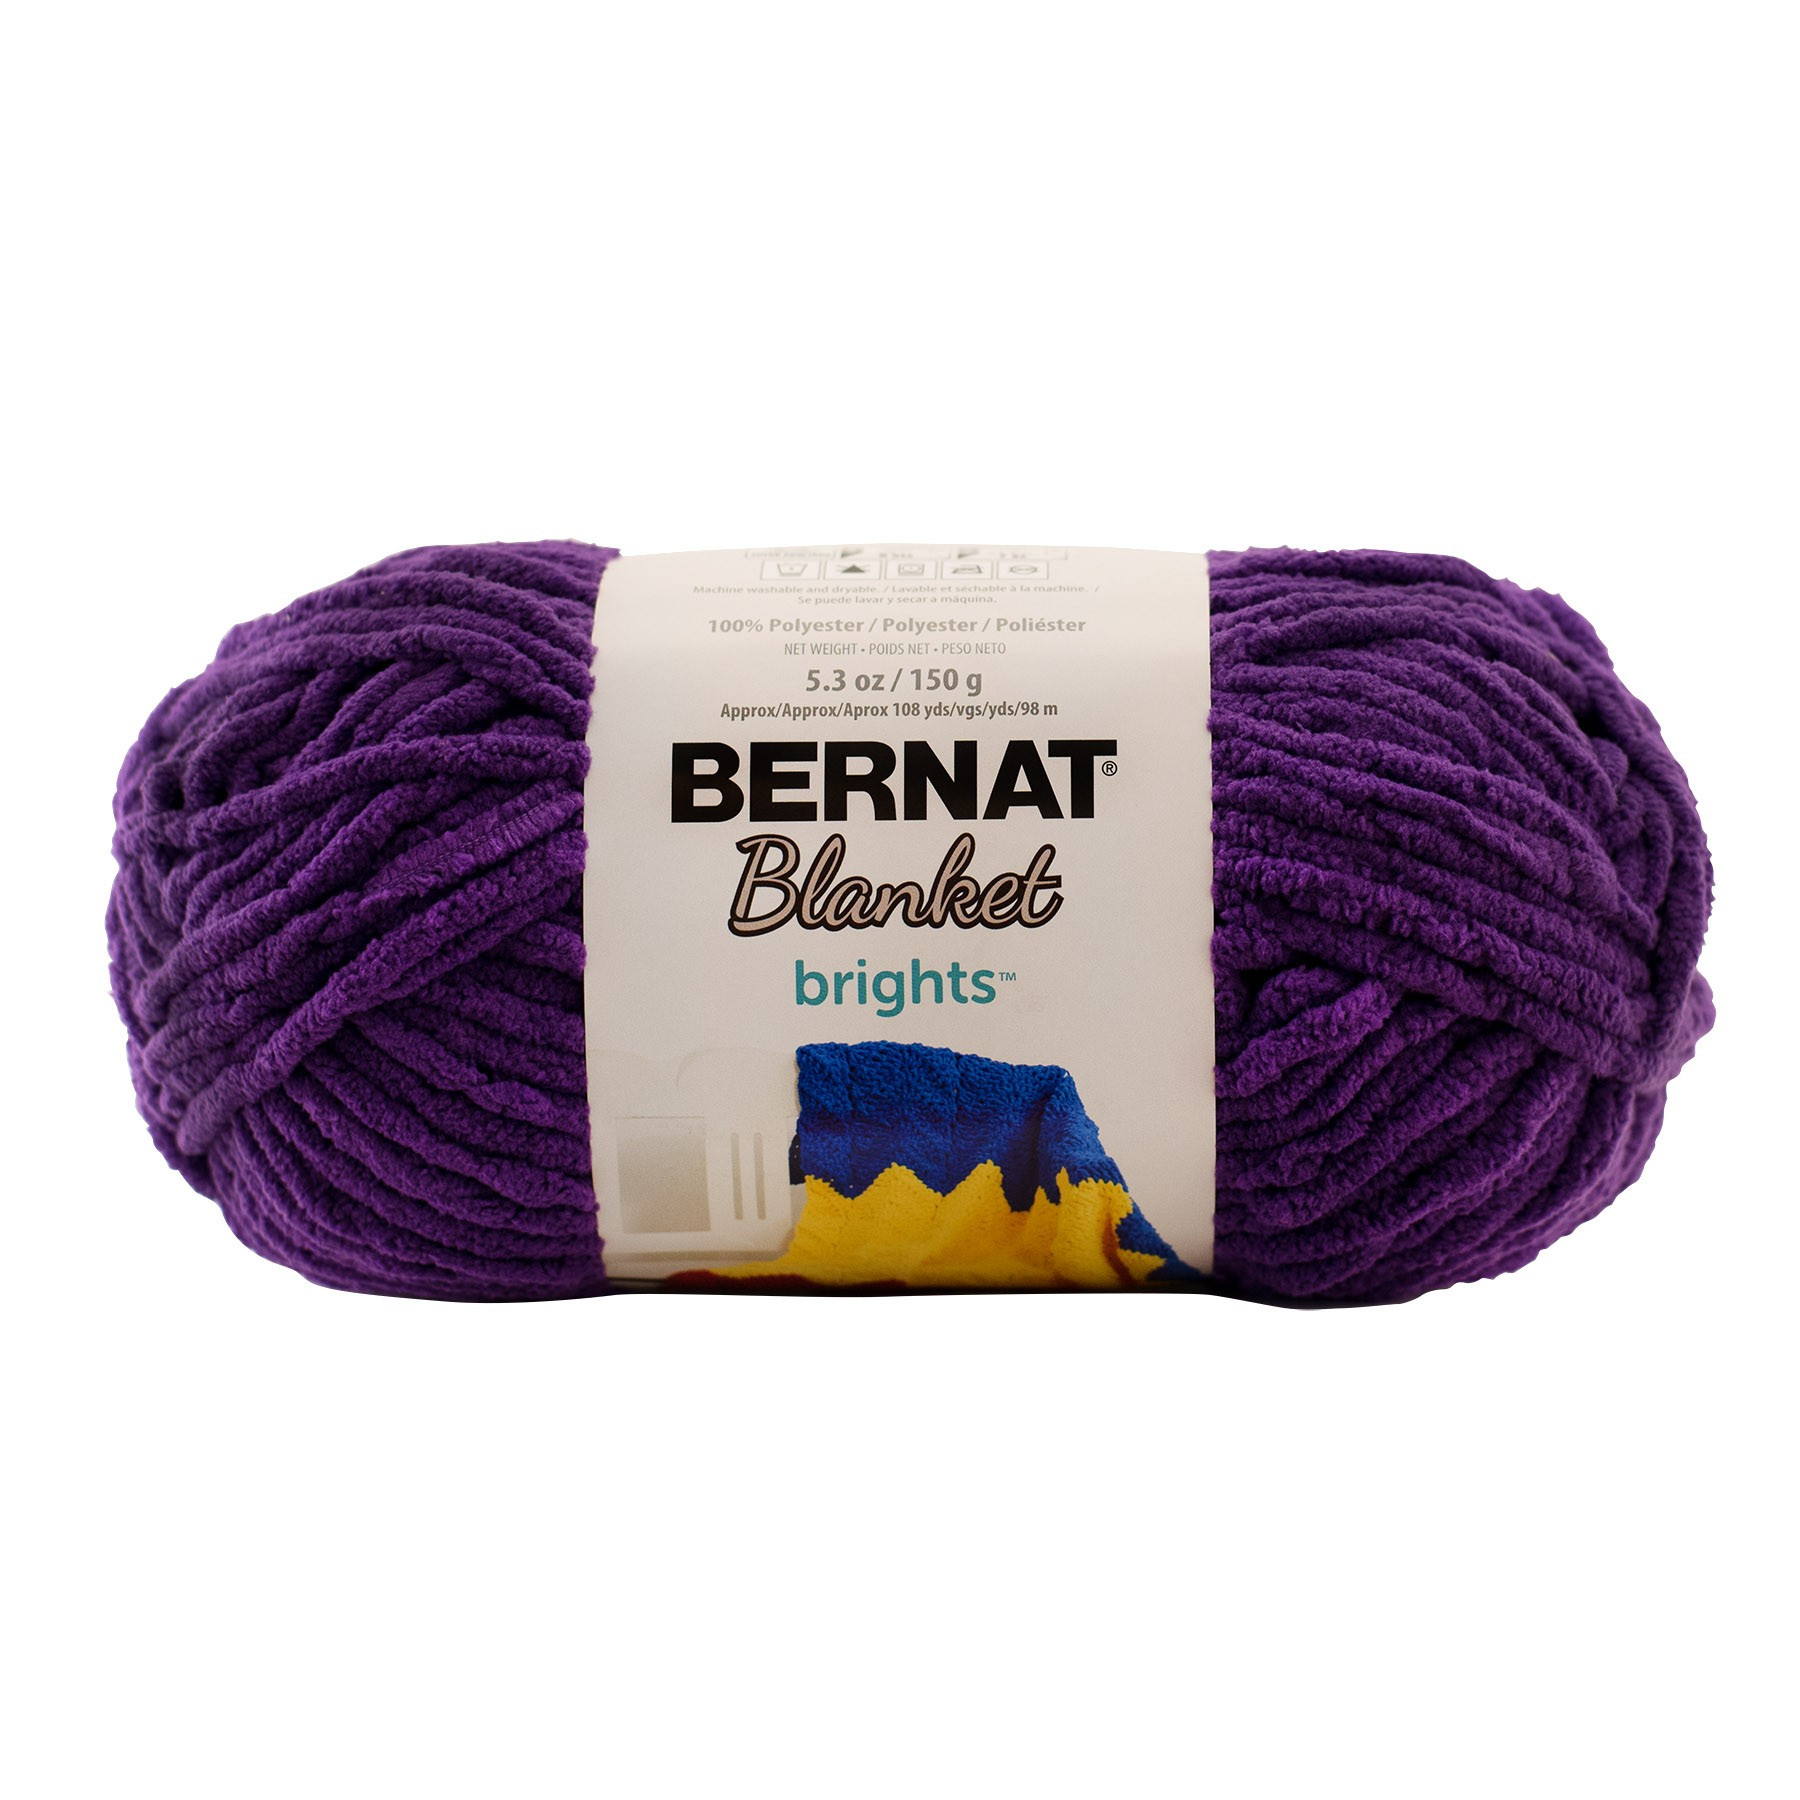 Bernat Blanket Yarn Best Of Bernat Blanket Brights Knitting Yarn 150g Of Beautiful 42 Models Bernat Blanket Yarn